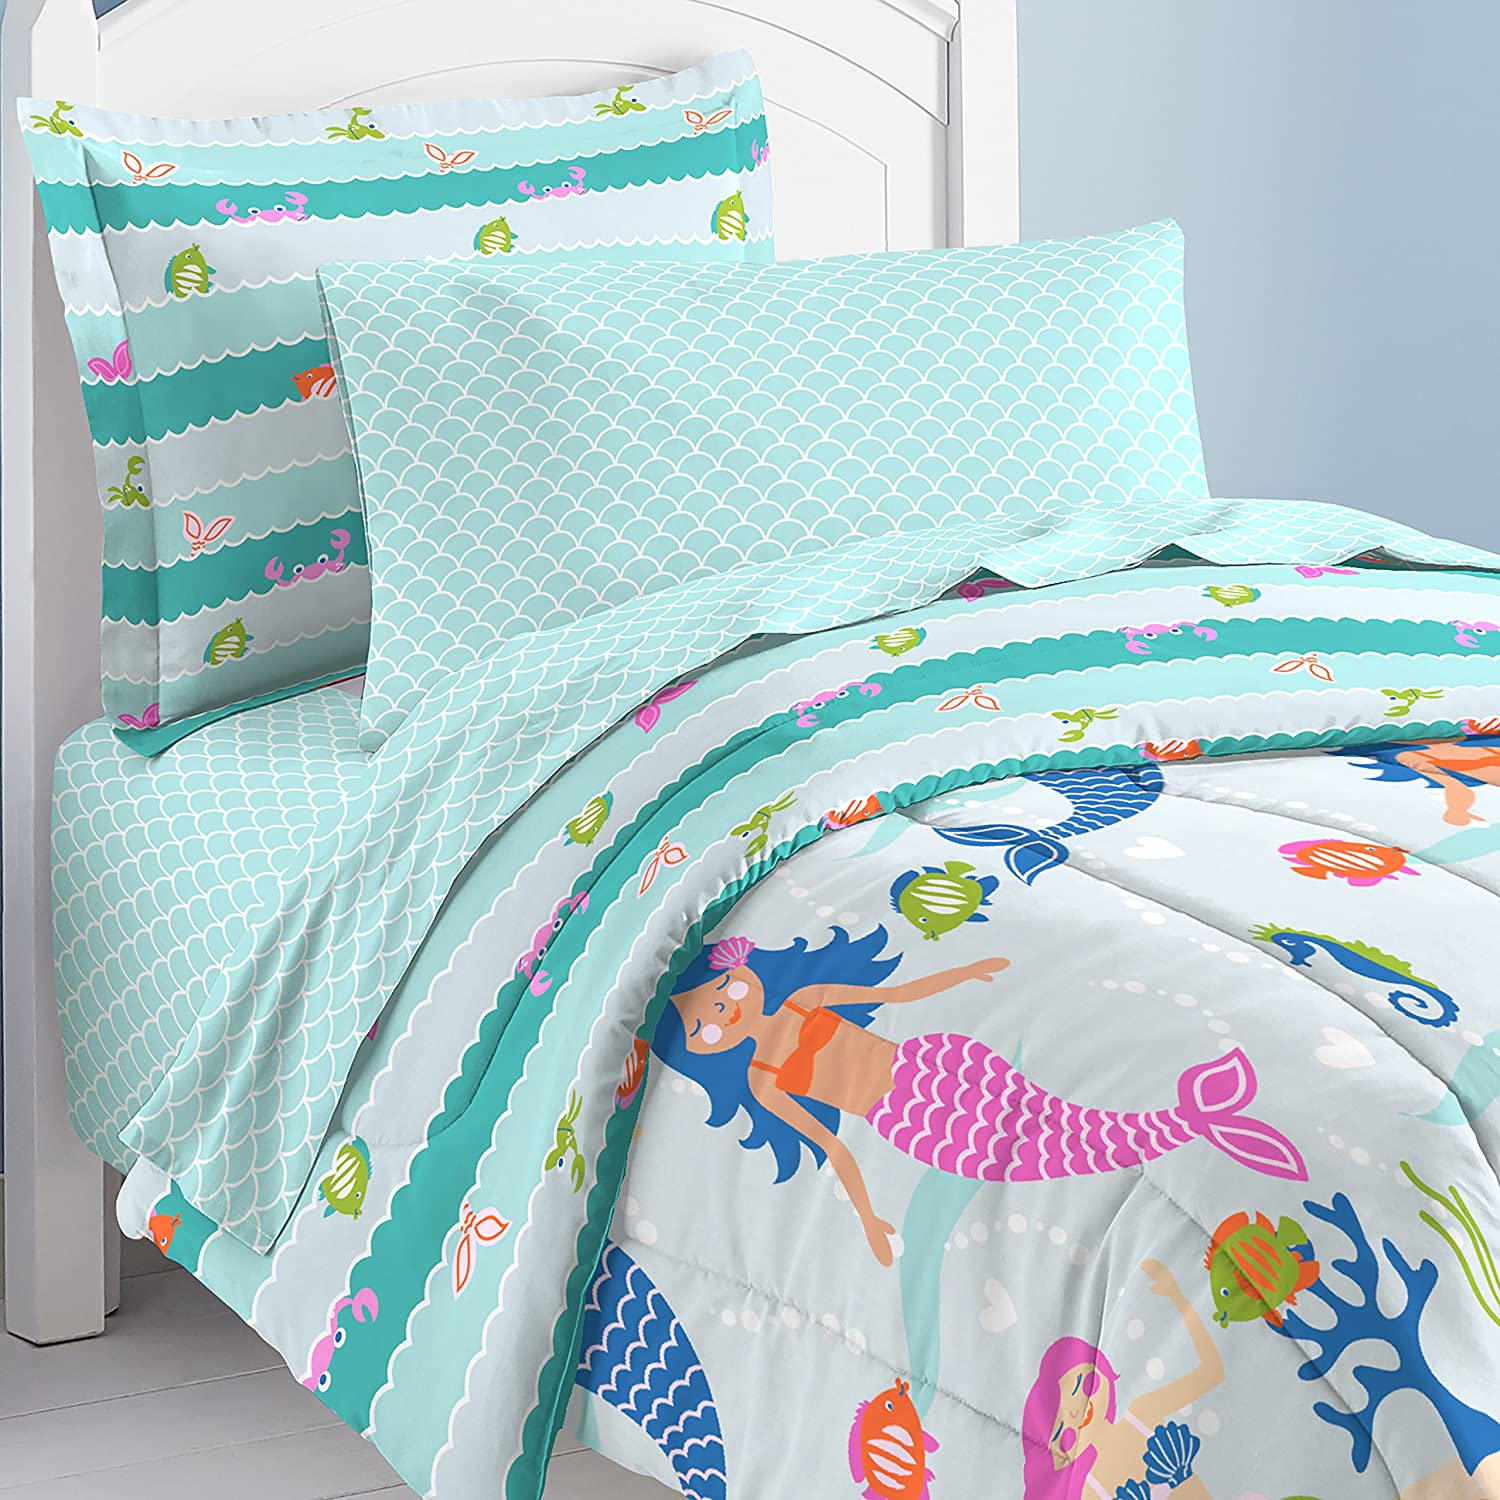 The Best Kids Bedding Sets: Reviews & Buying Guide 4